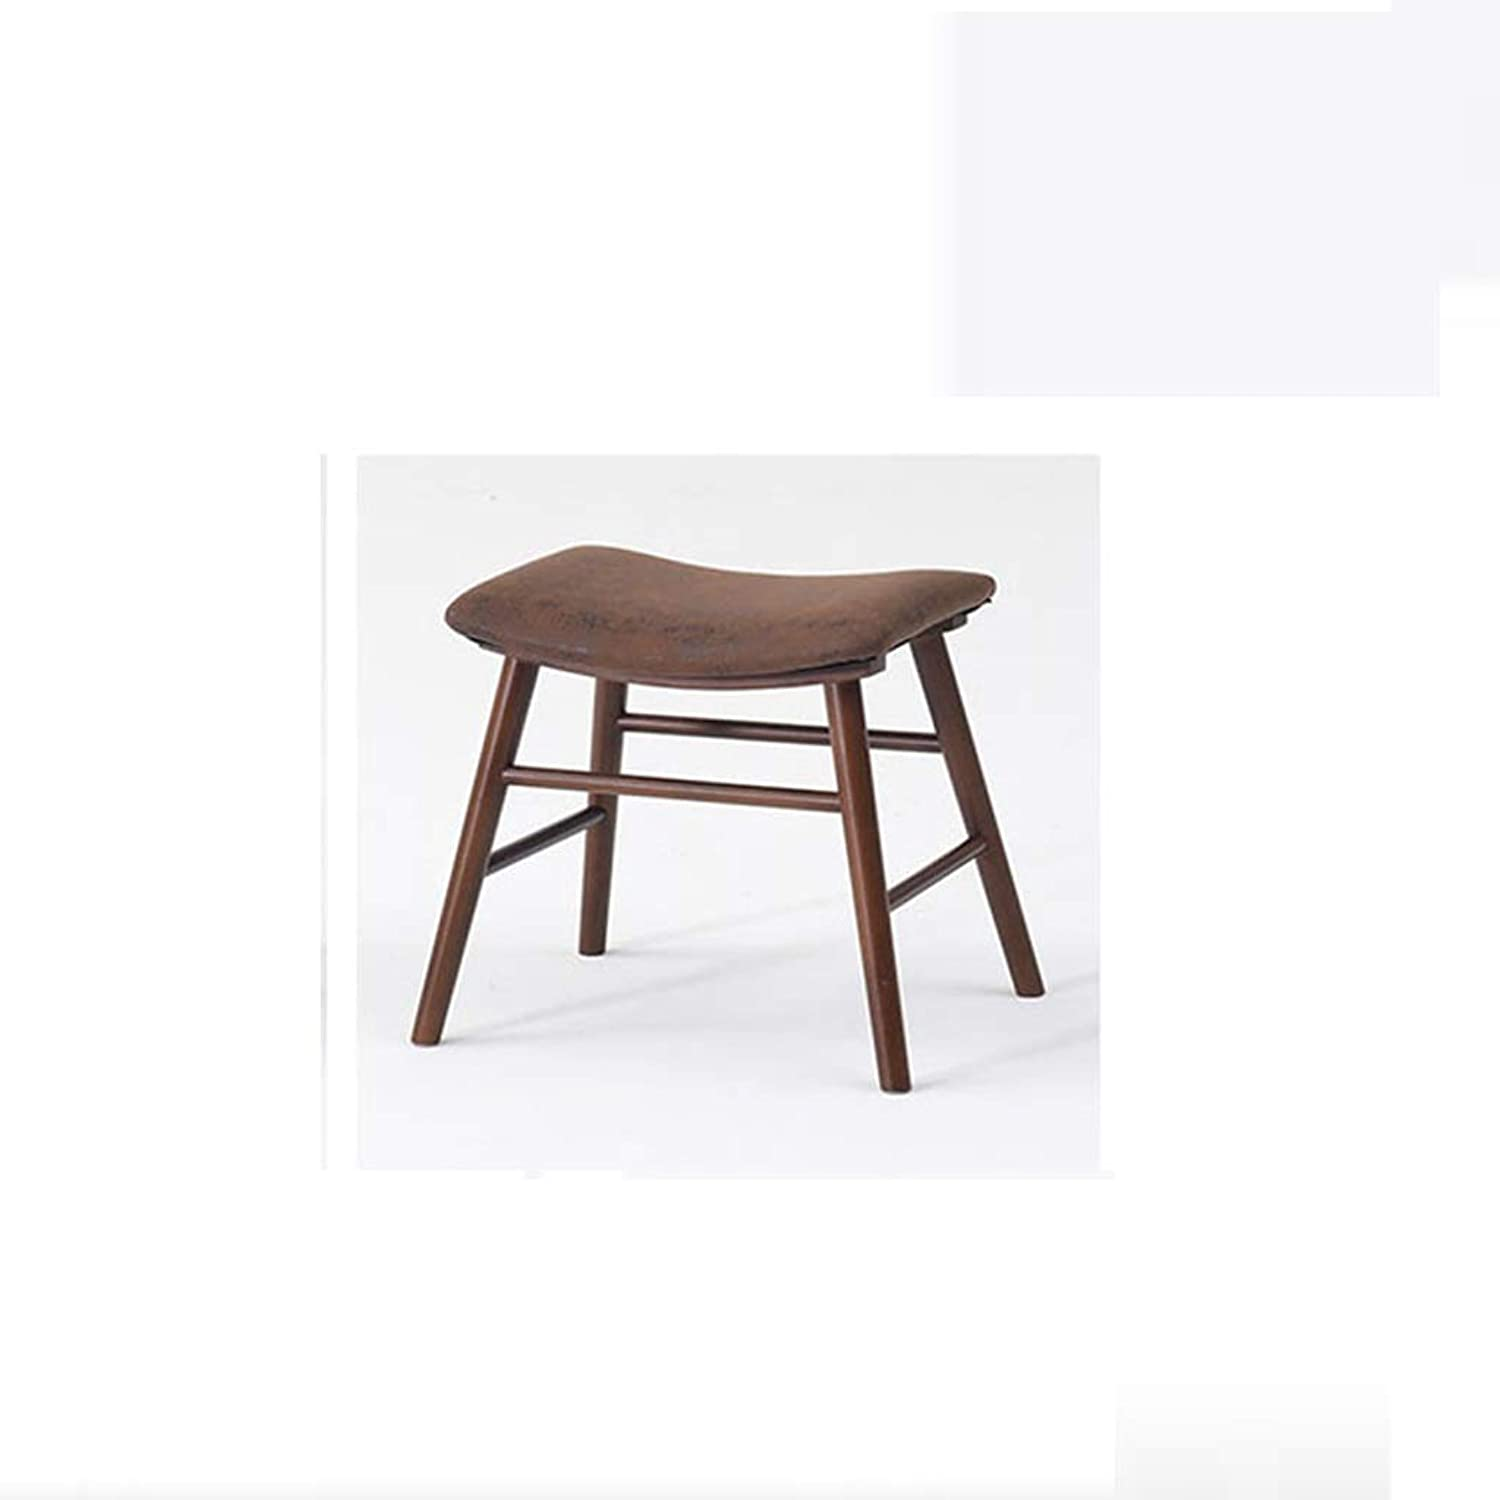 LLSDLS Small Stool-Curved Solid Wood Stool Bench Casual Stool shoes Bench Simple Fashion Sofa Stool